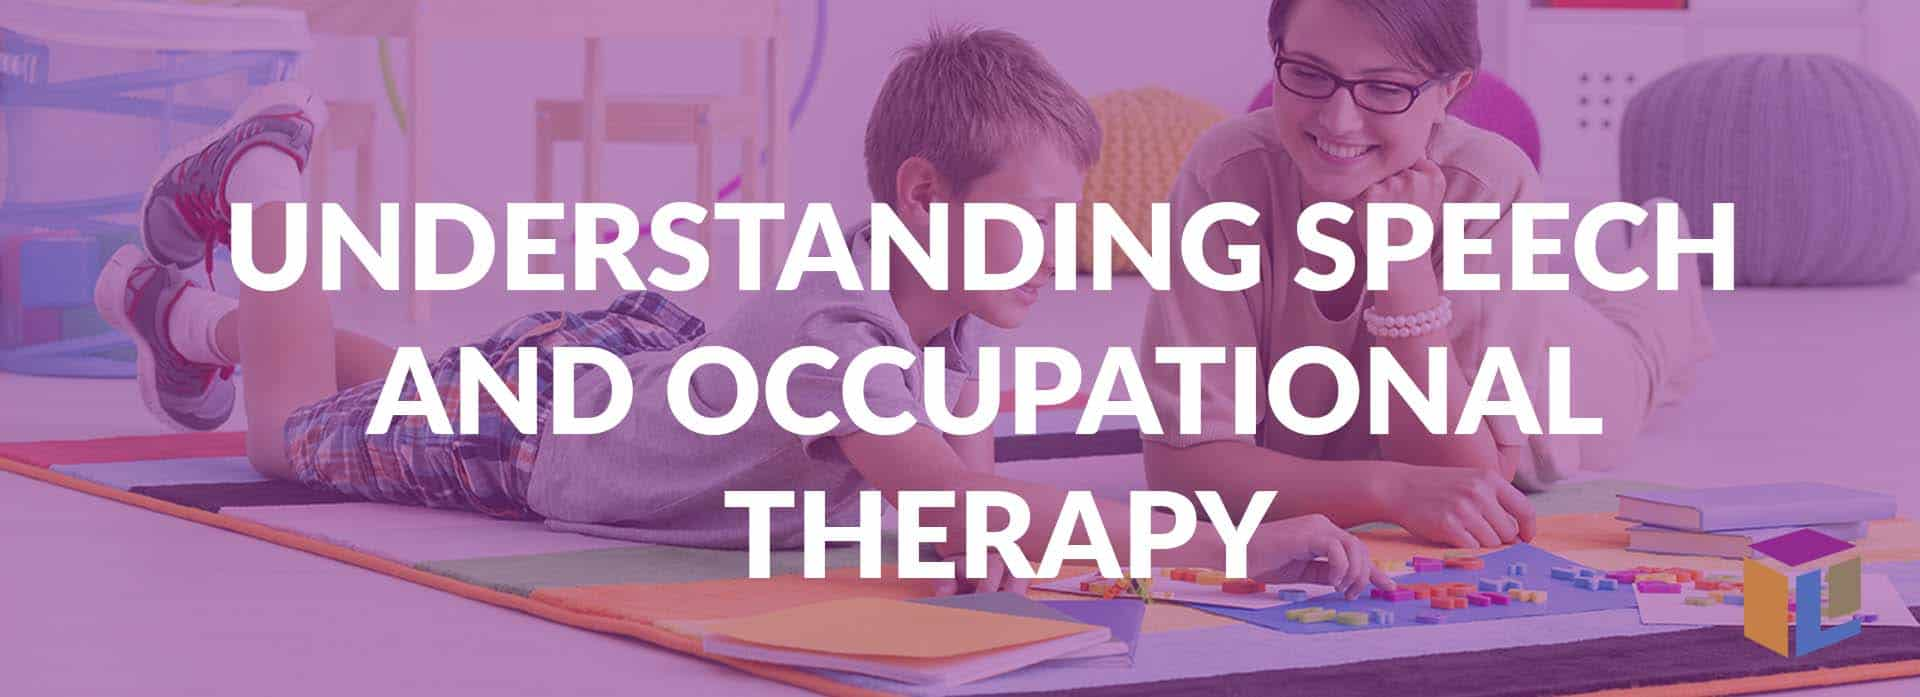 Understanding Speech and Occupational Therapy